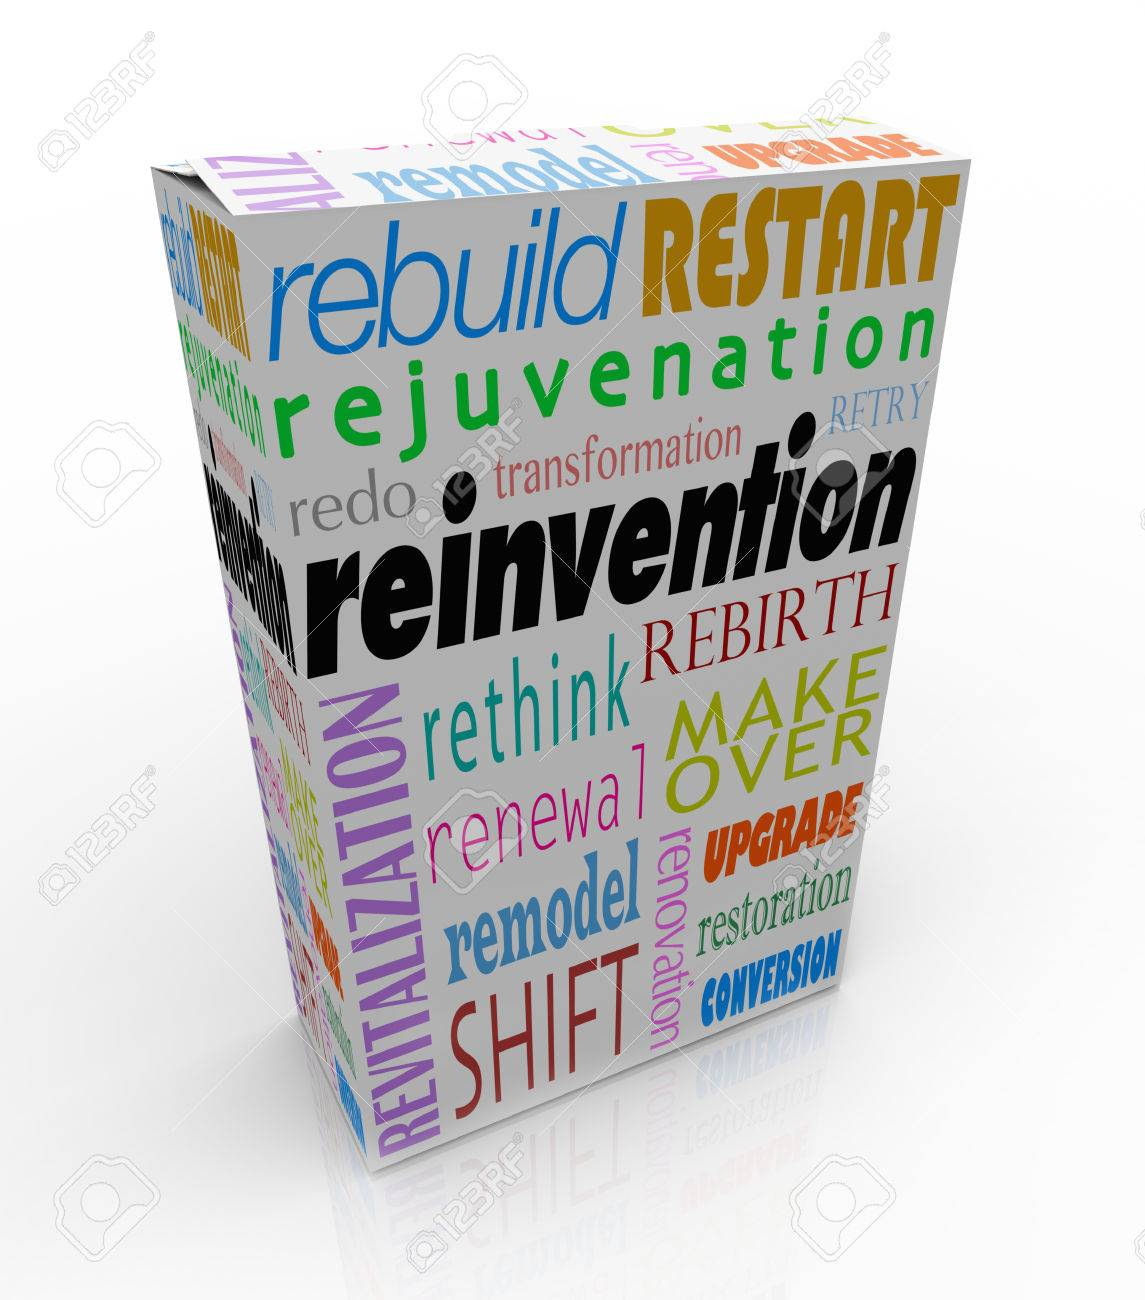 Reinvention words on a product or box or package to illustrate merchandise that has undergone a rebuild, restart, redo, rejuvenation, revitalization, rethink, rebirth, rethink or makeover Stock Photo - 23988839